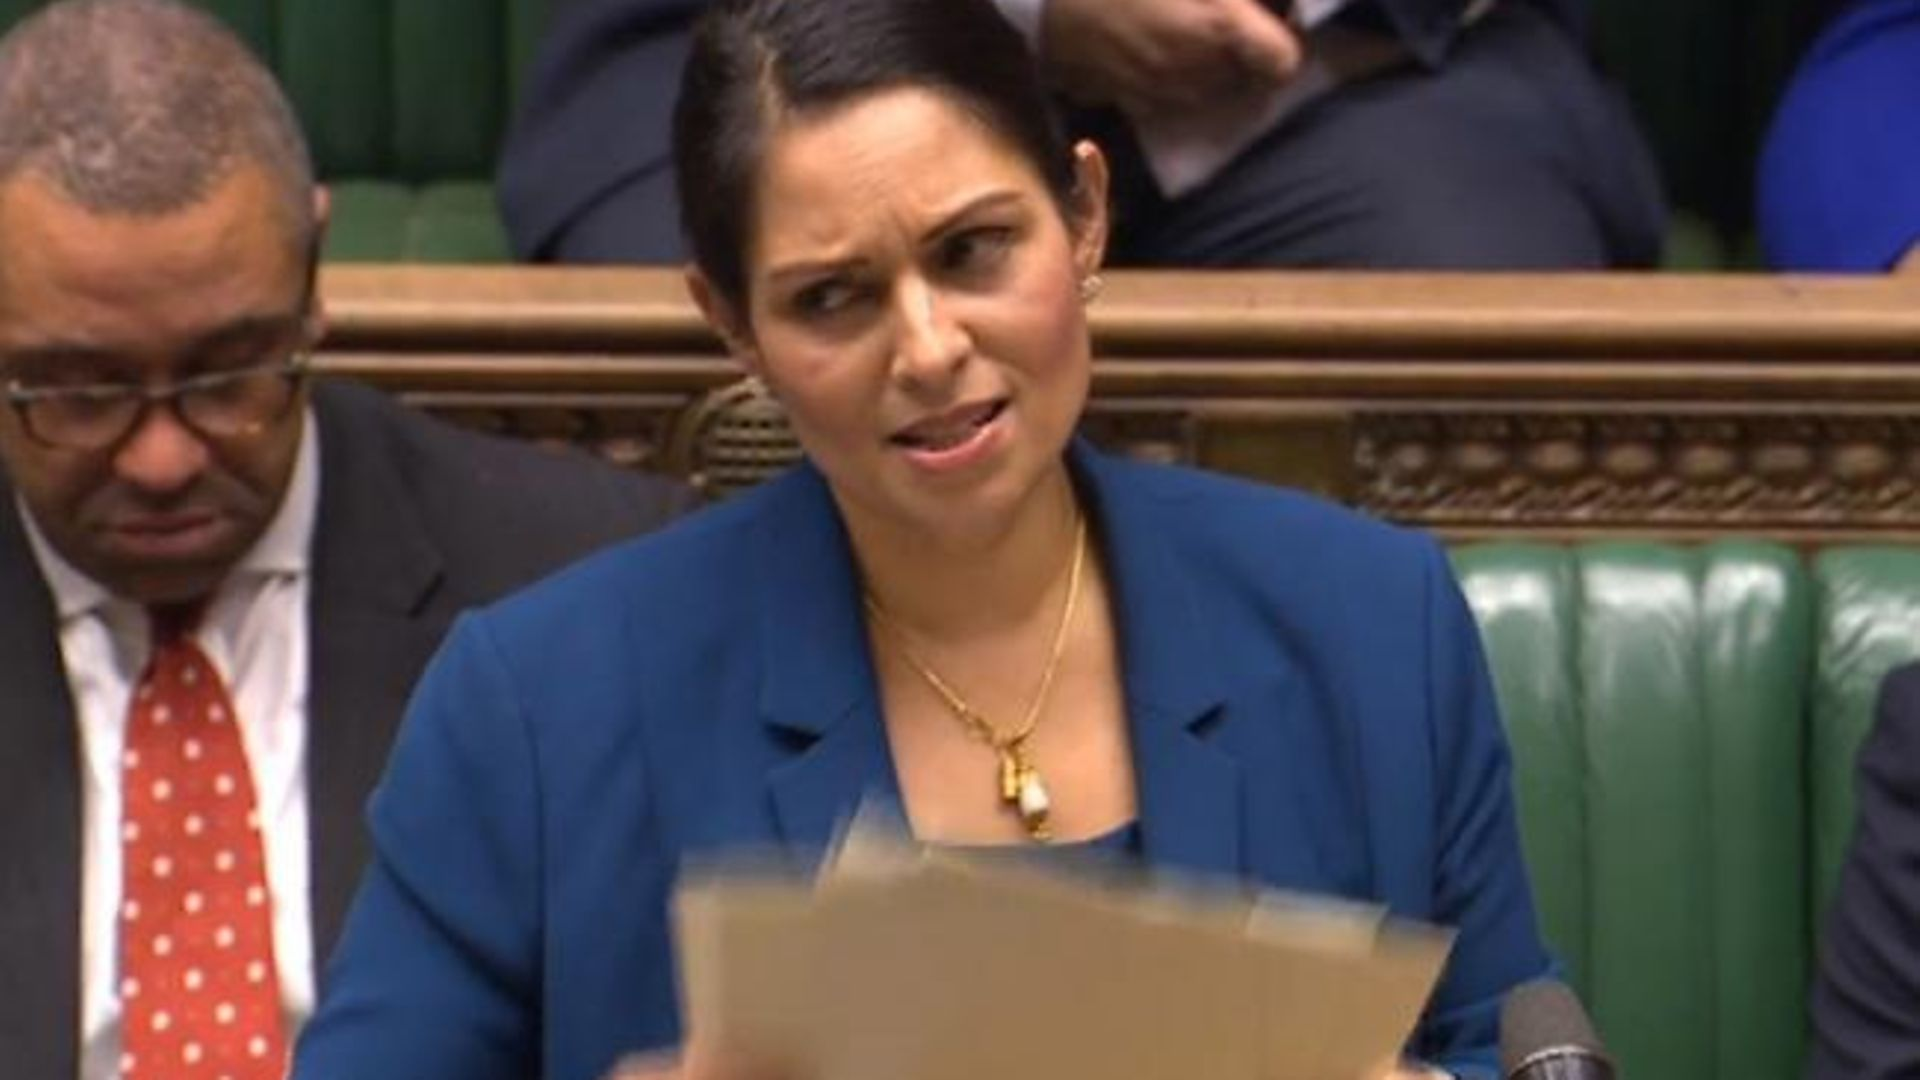 Priti Patel in the House of Commons - Credit: Parliament Live